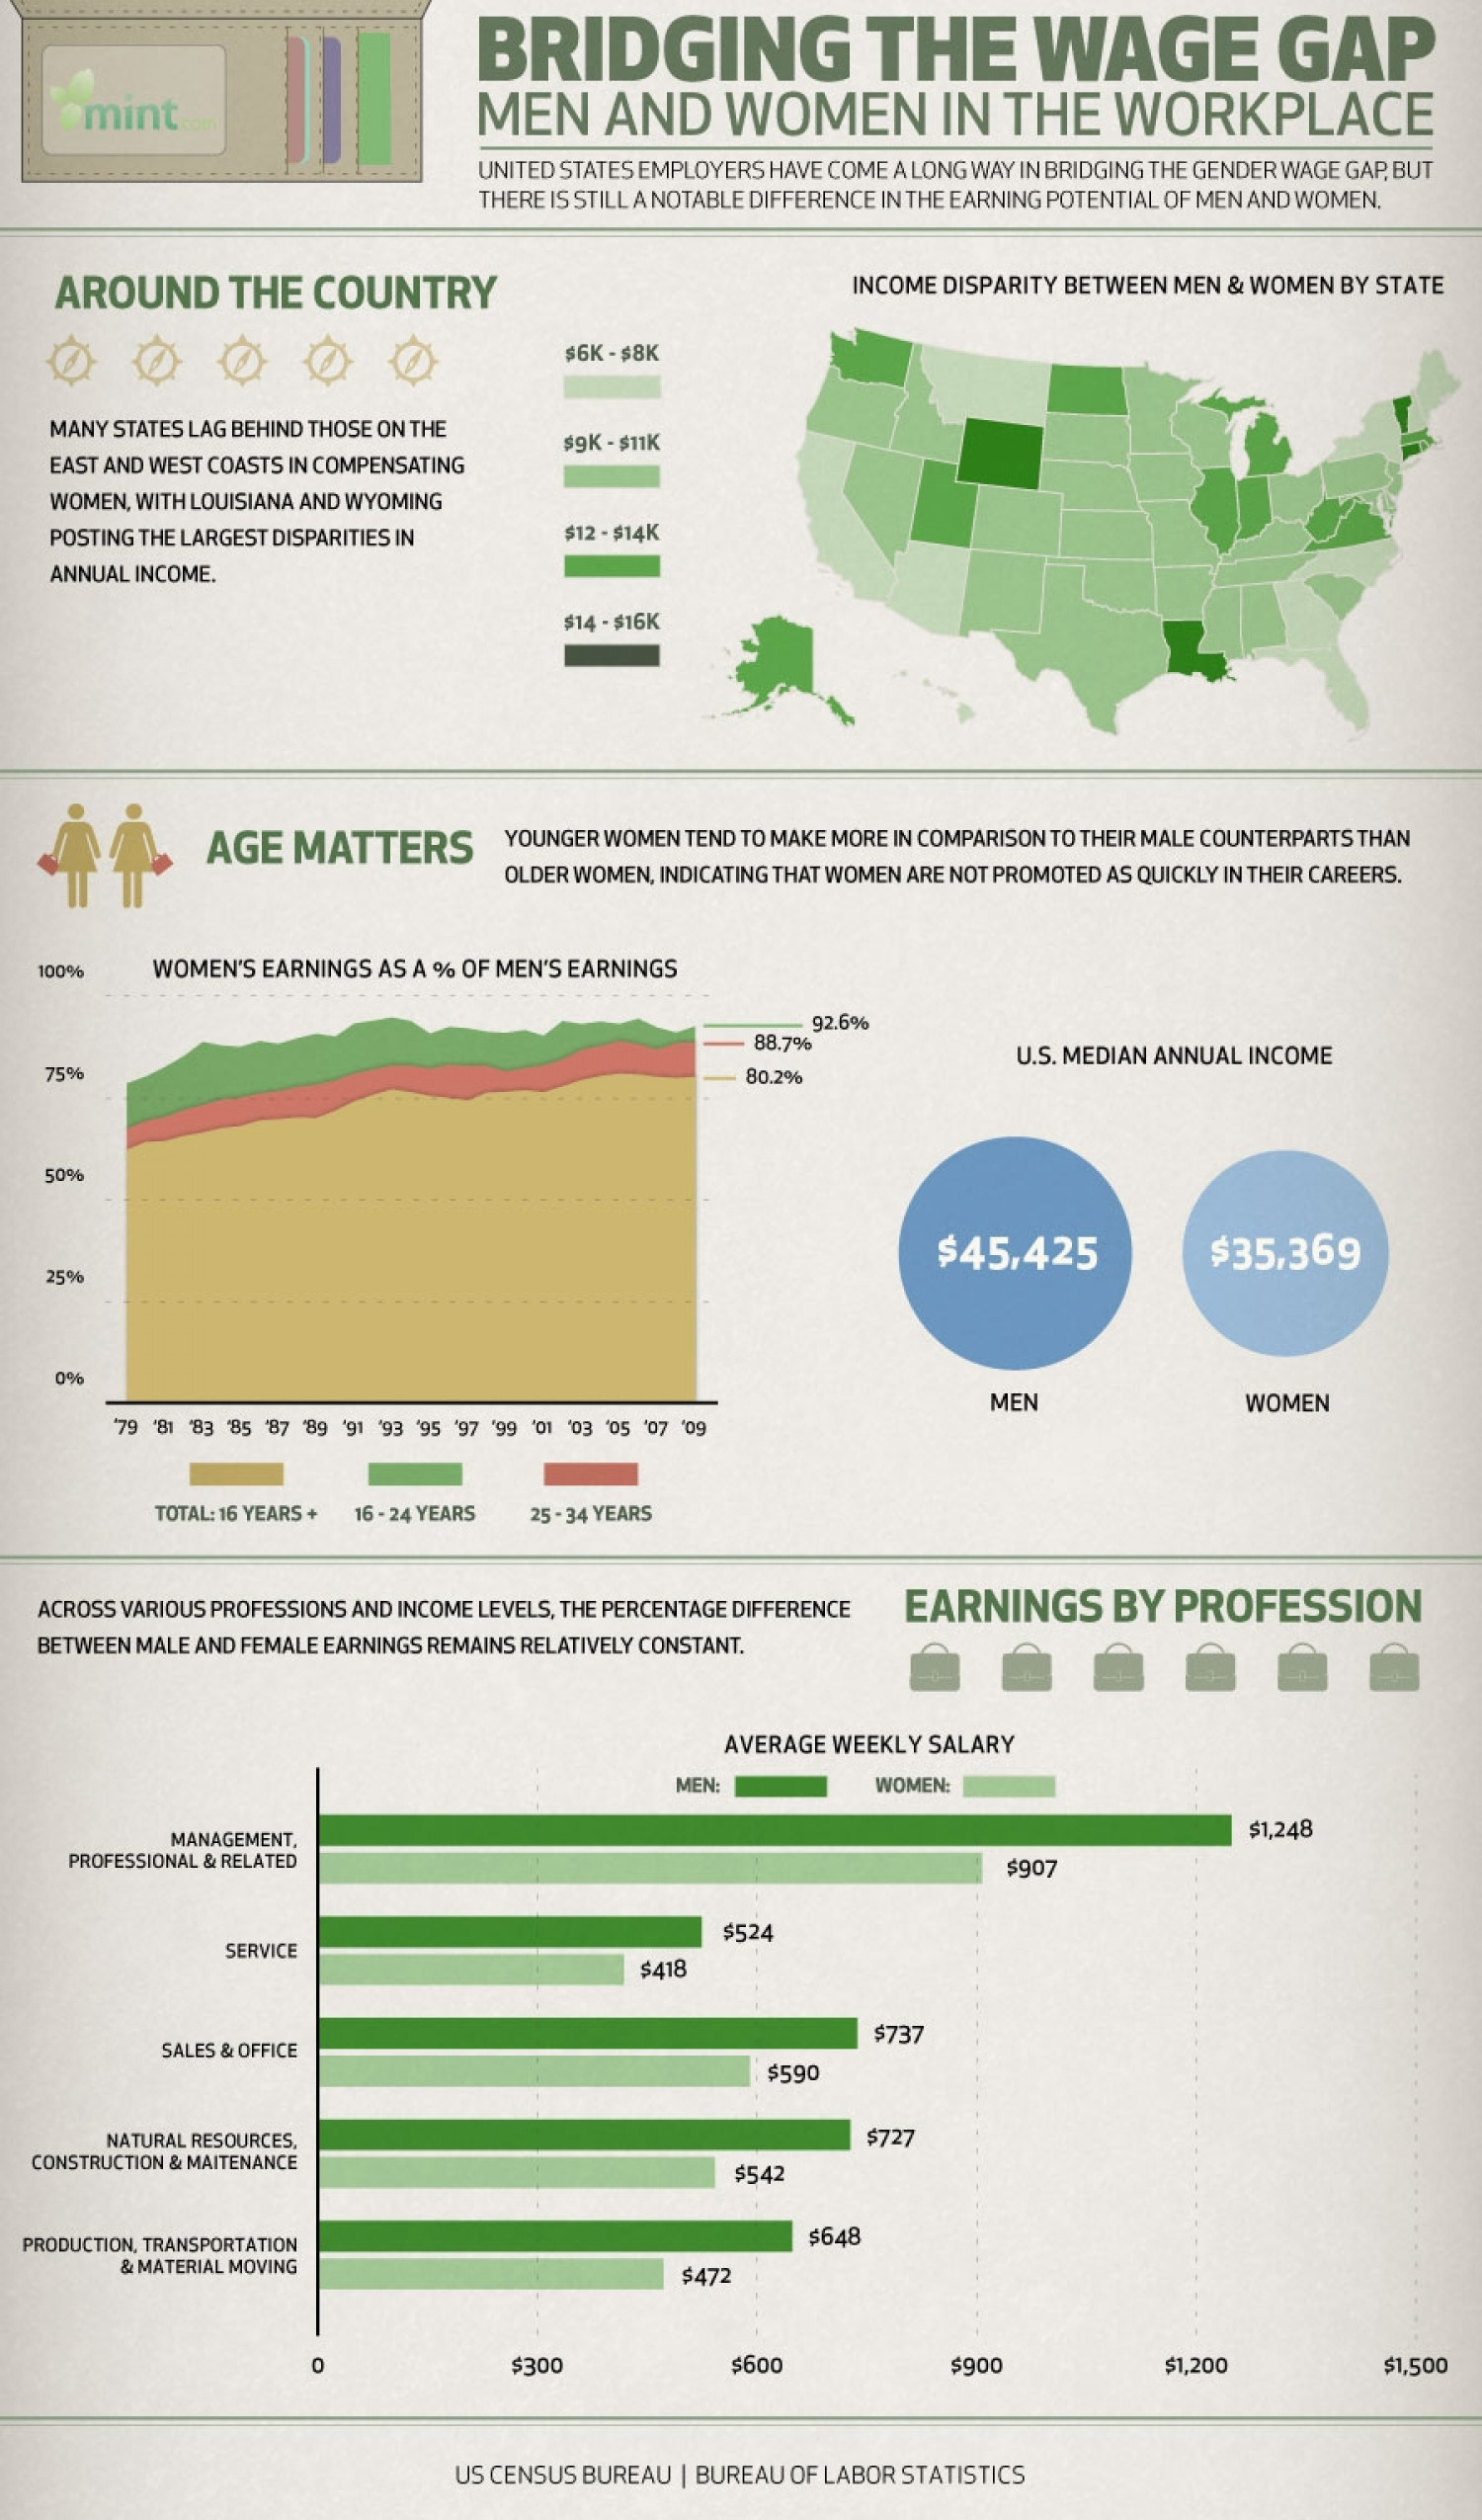 Bridging The Wage Gap: Men and Women In The Workplace  Infographic